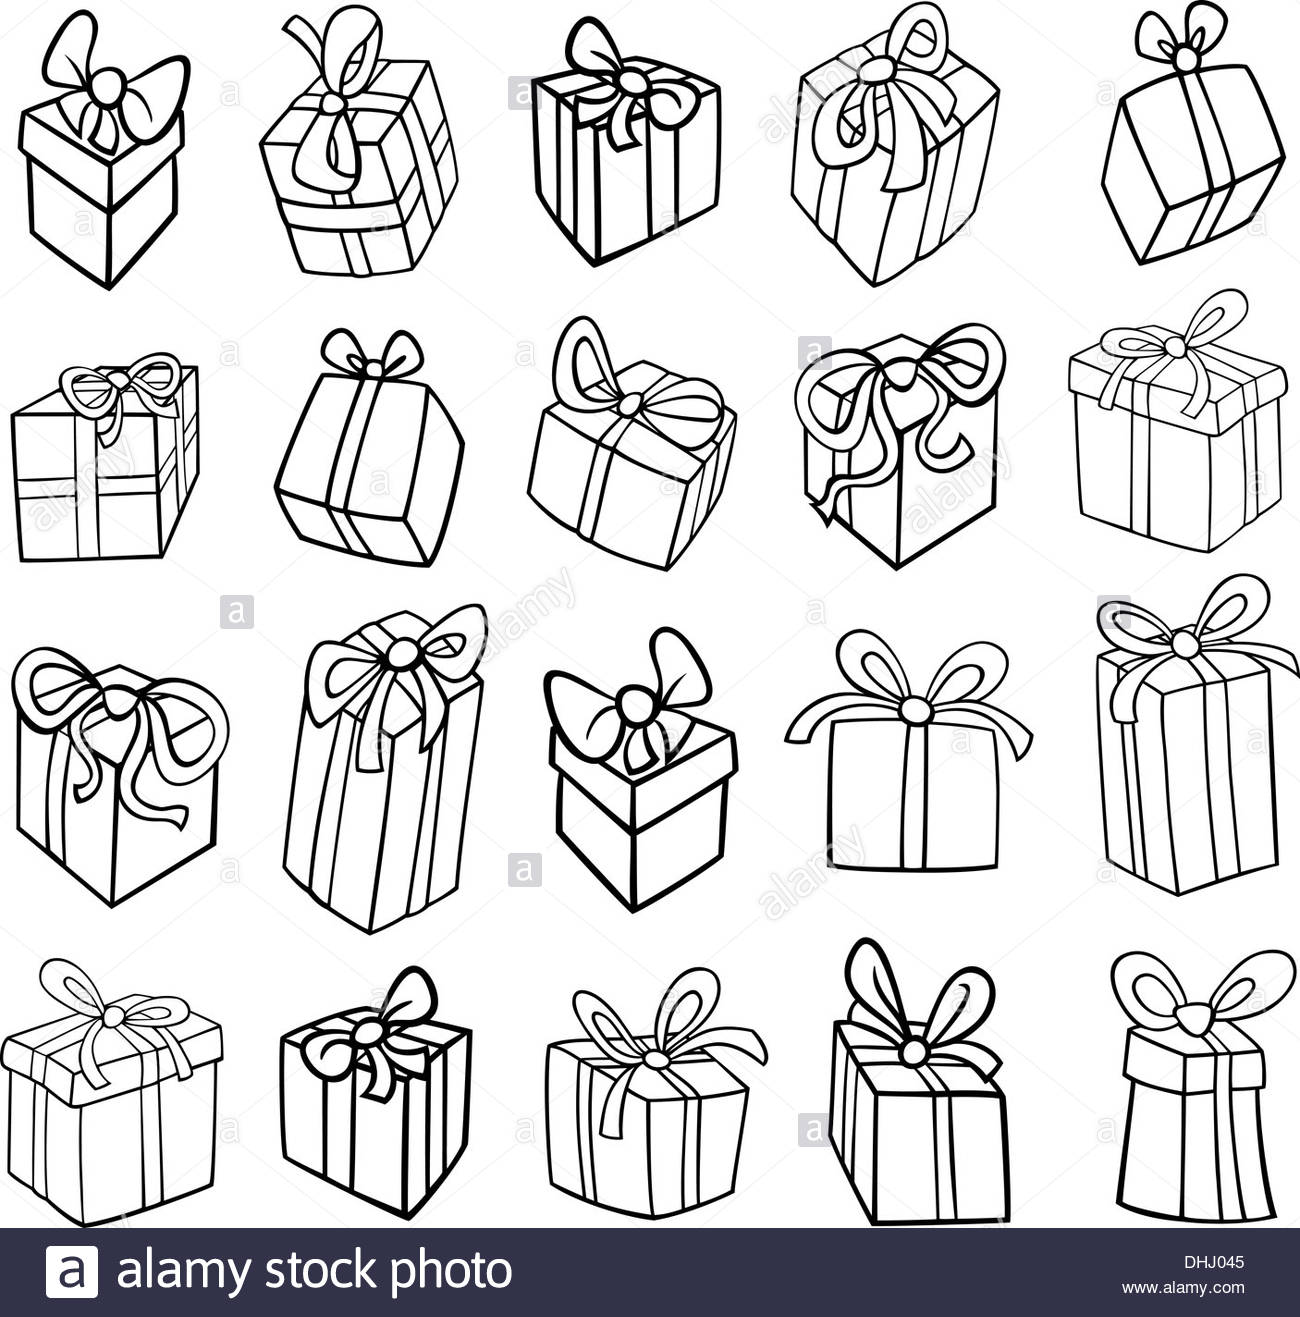 Black and White Cartoon Illustration of Christmas or Birthday Stock.